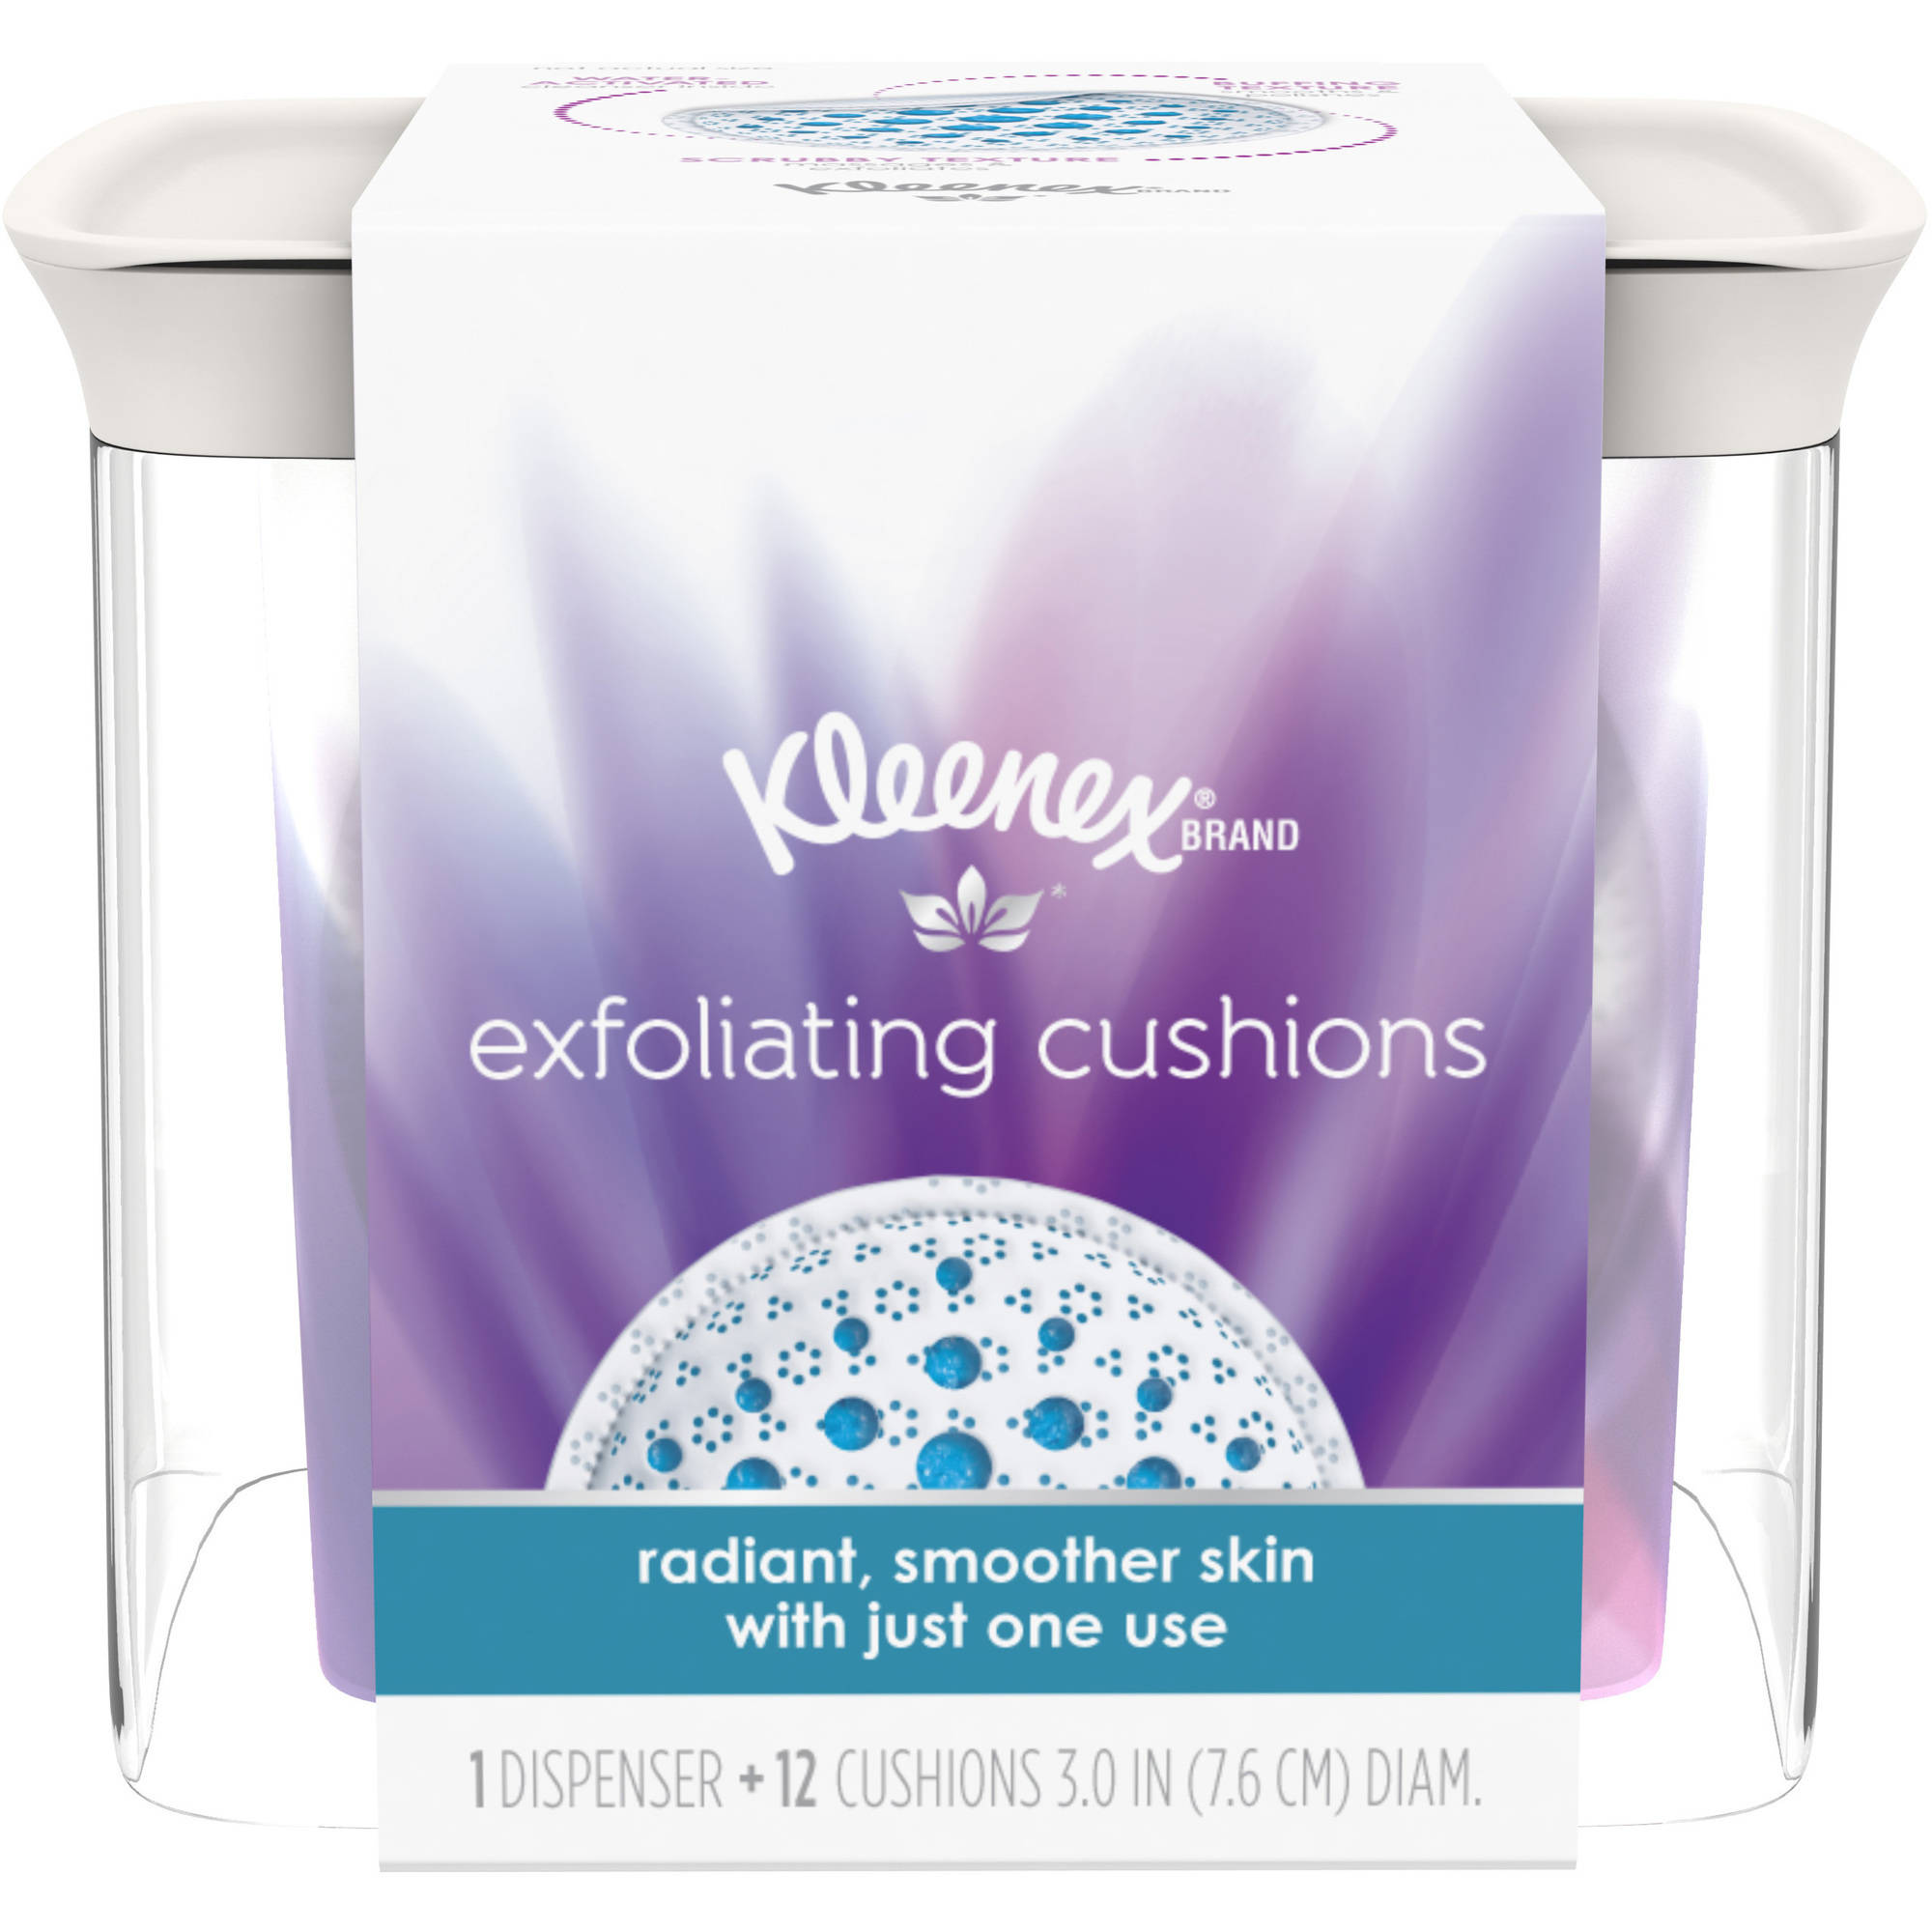 Kleenex Exfoliating Cushions, Refillable Dispenser & Pads